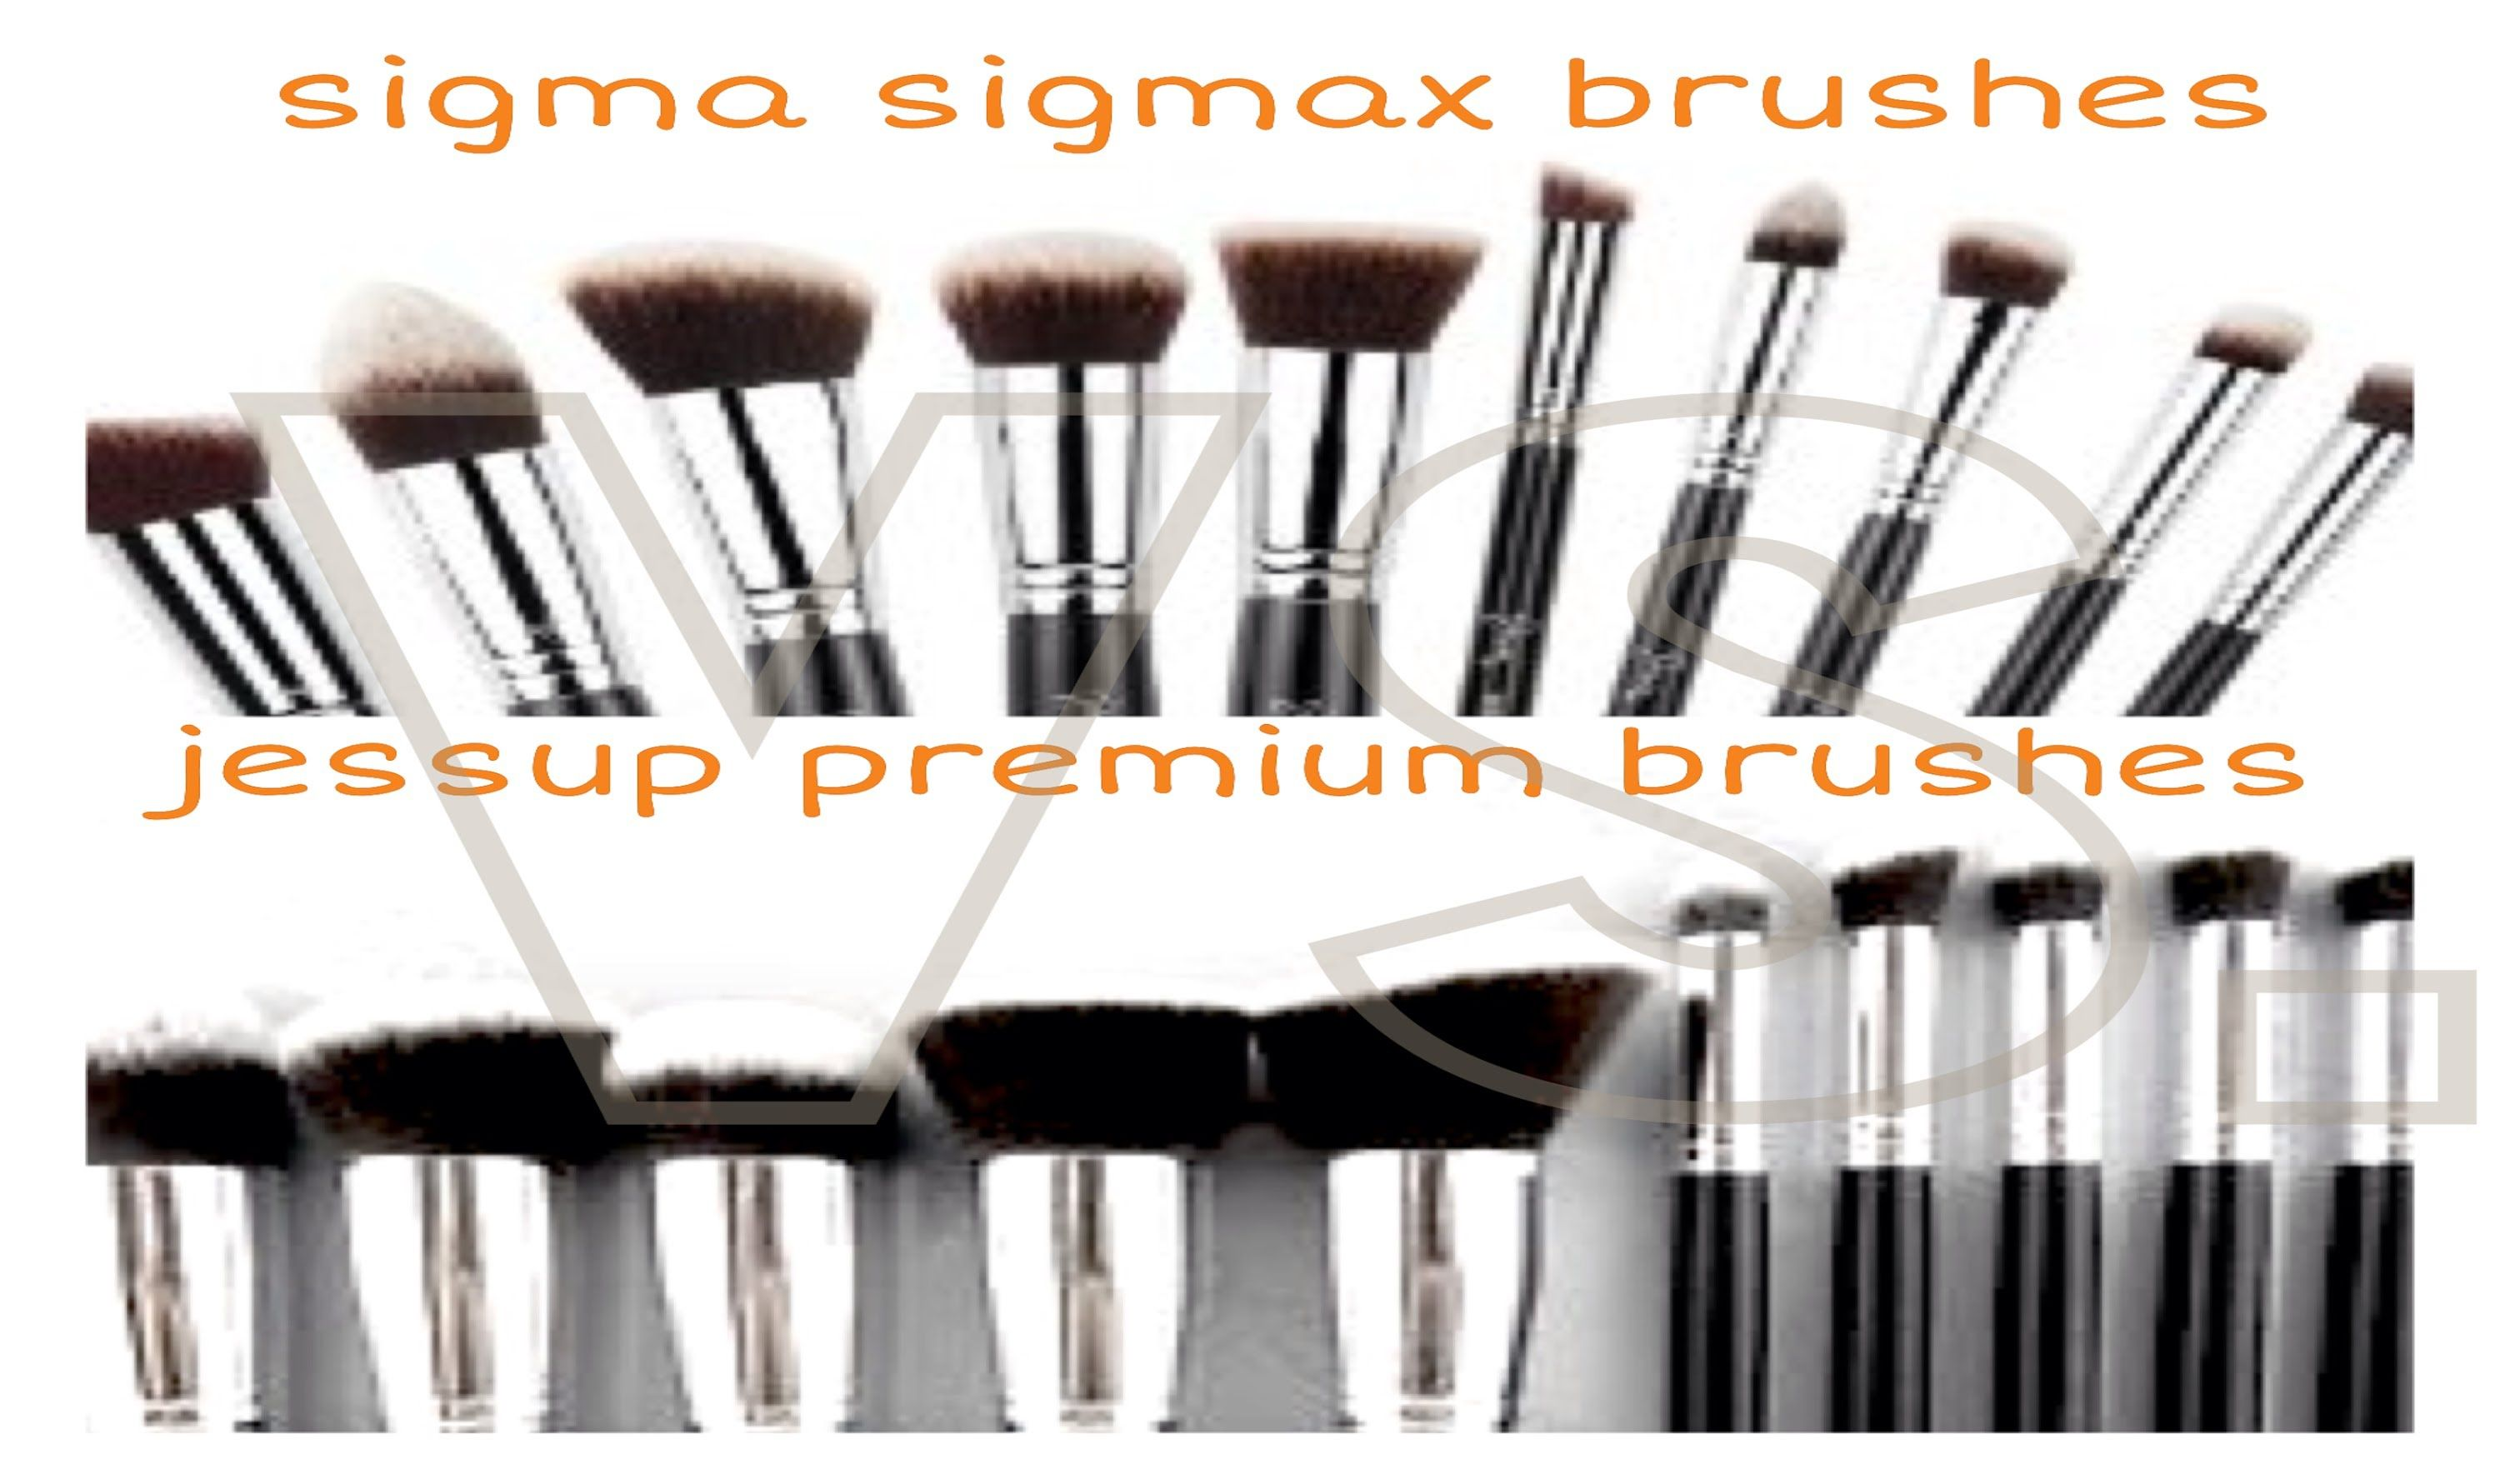 Sigma 'Sigmax' Brush Dupes?! | tiffybabxoxo